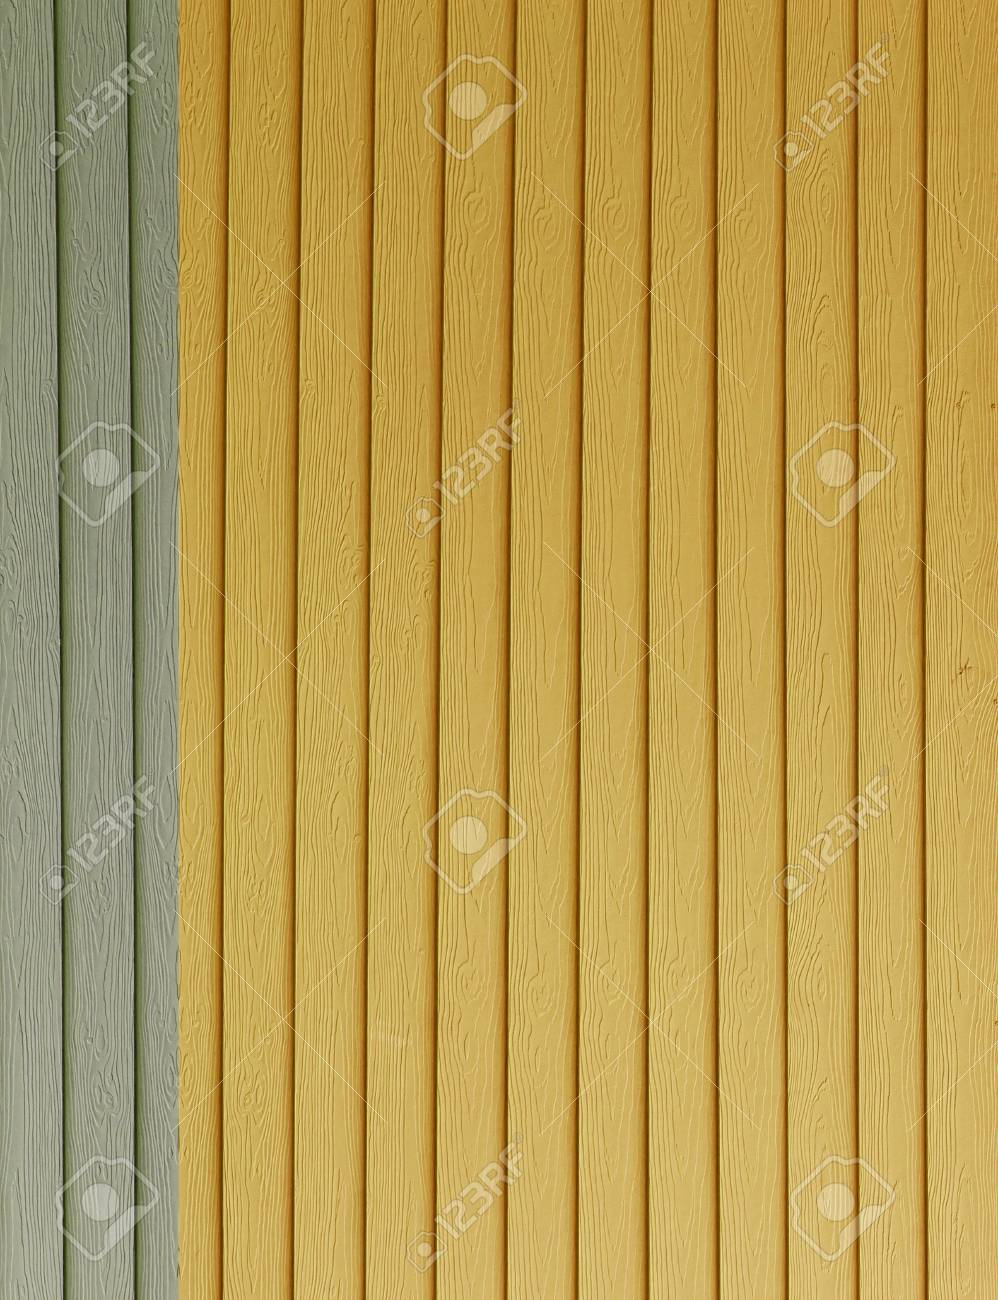 colorful wood board Stock Photo - 13803845